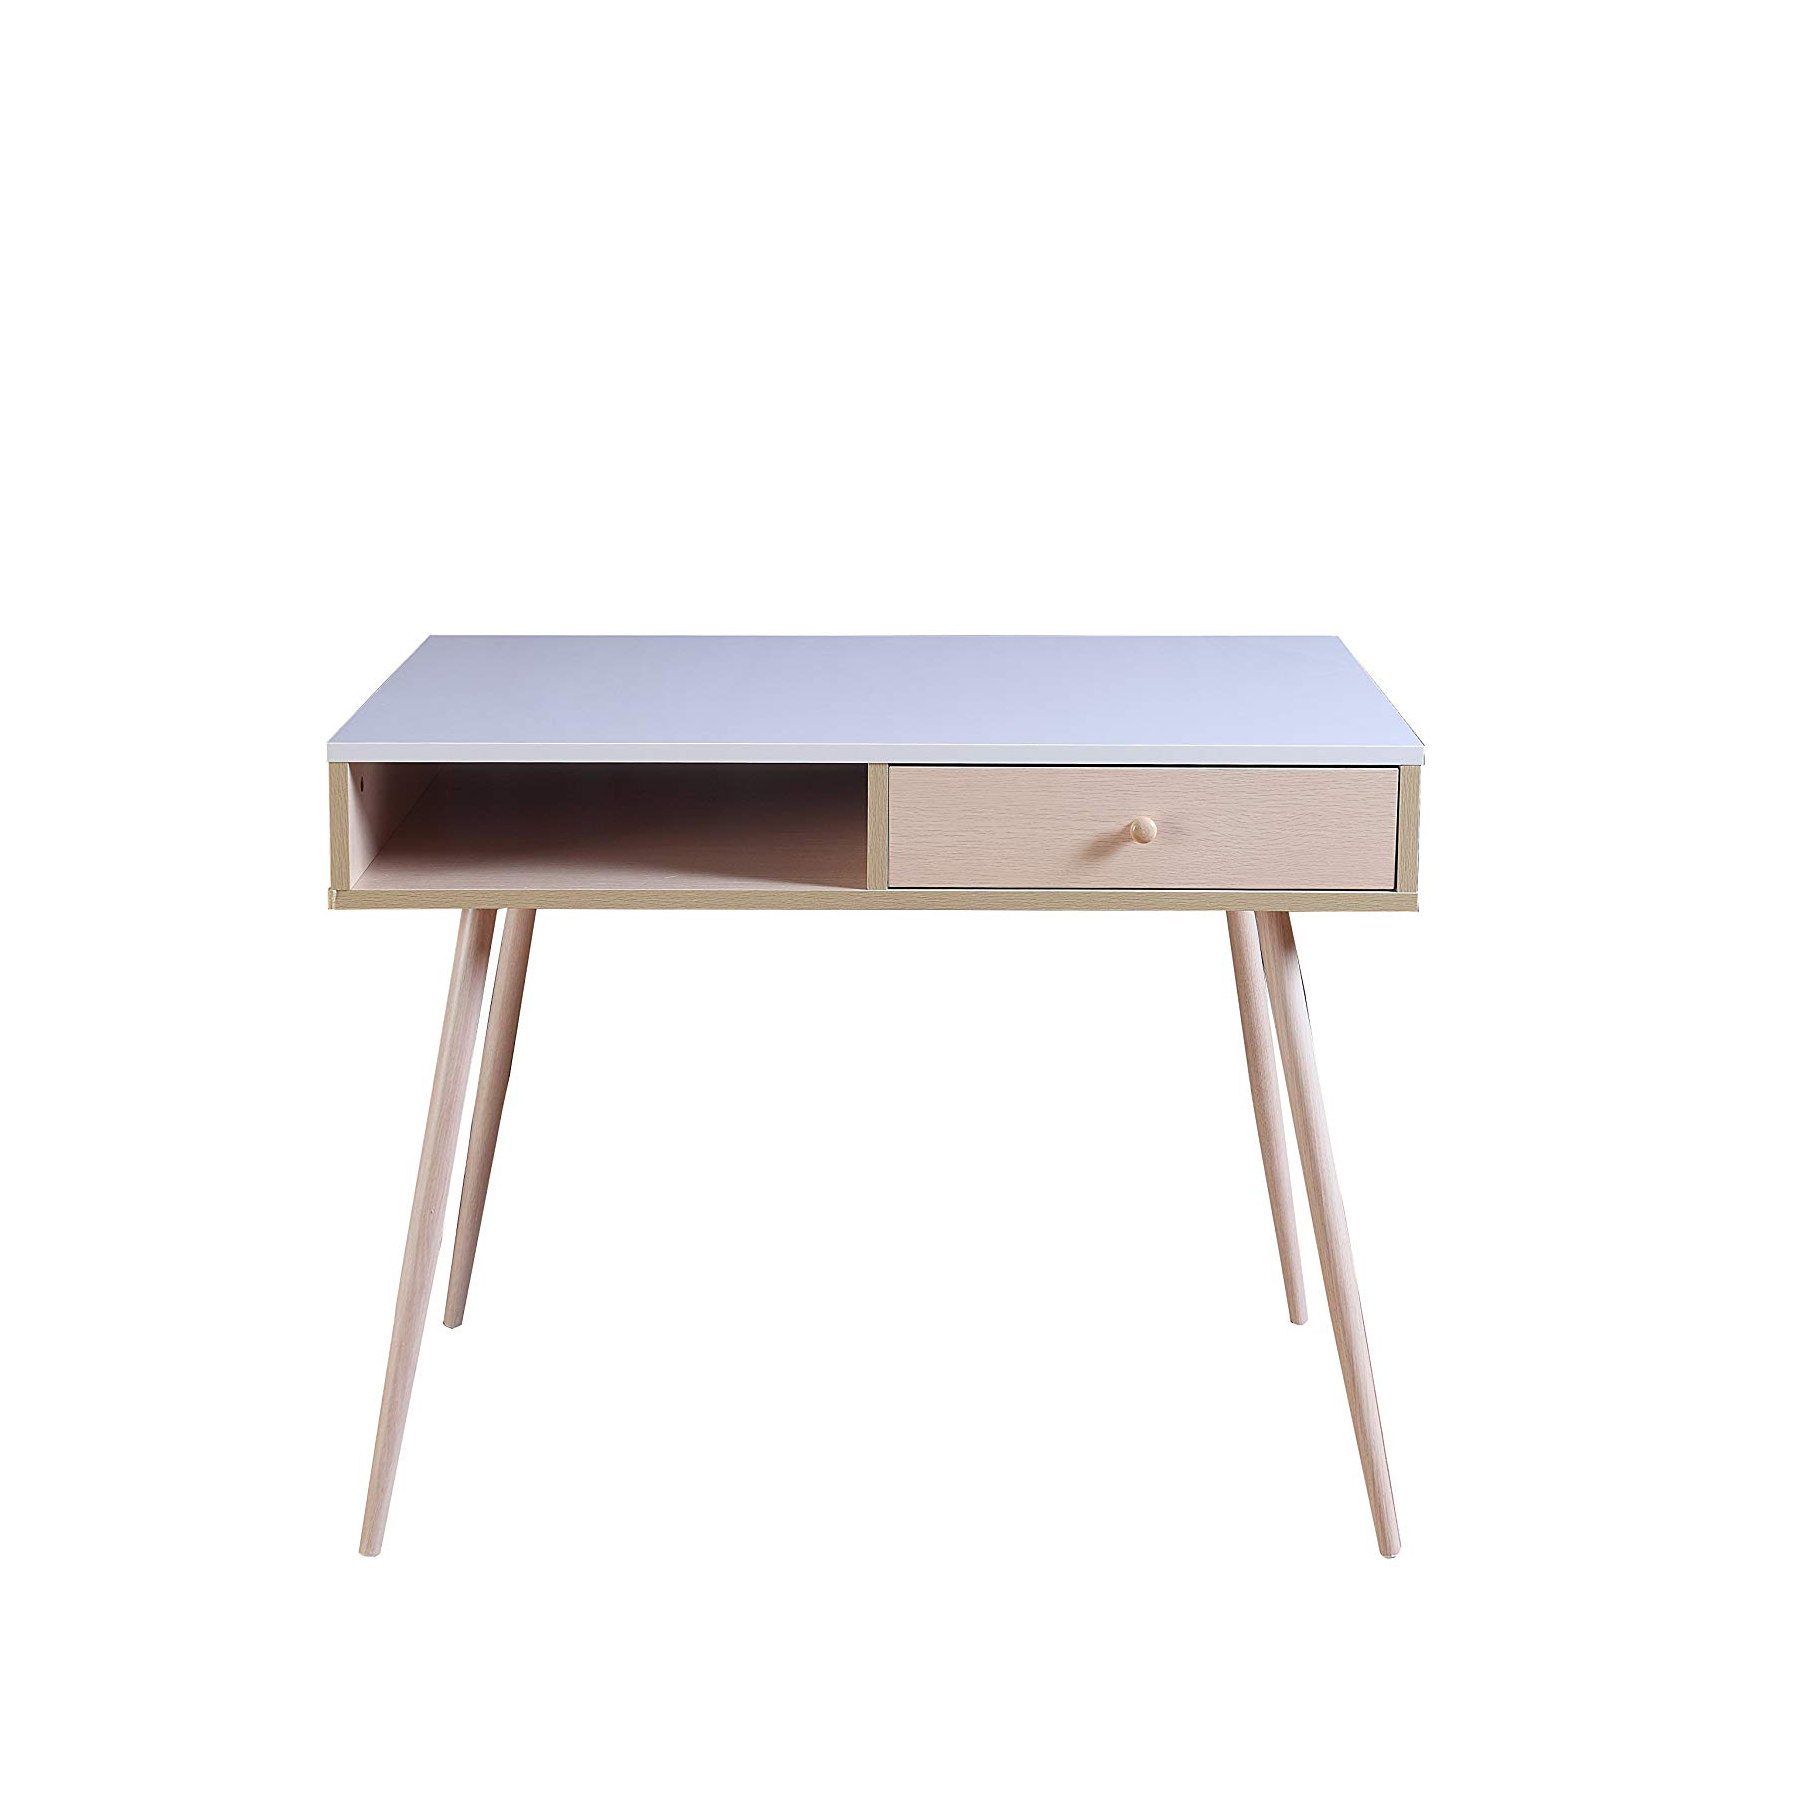 The 7 Best Desks For Small Spaces | Real Simple